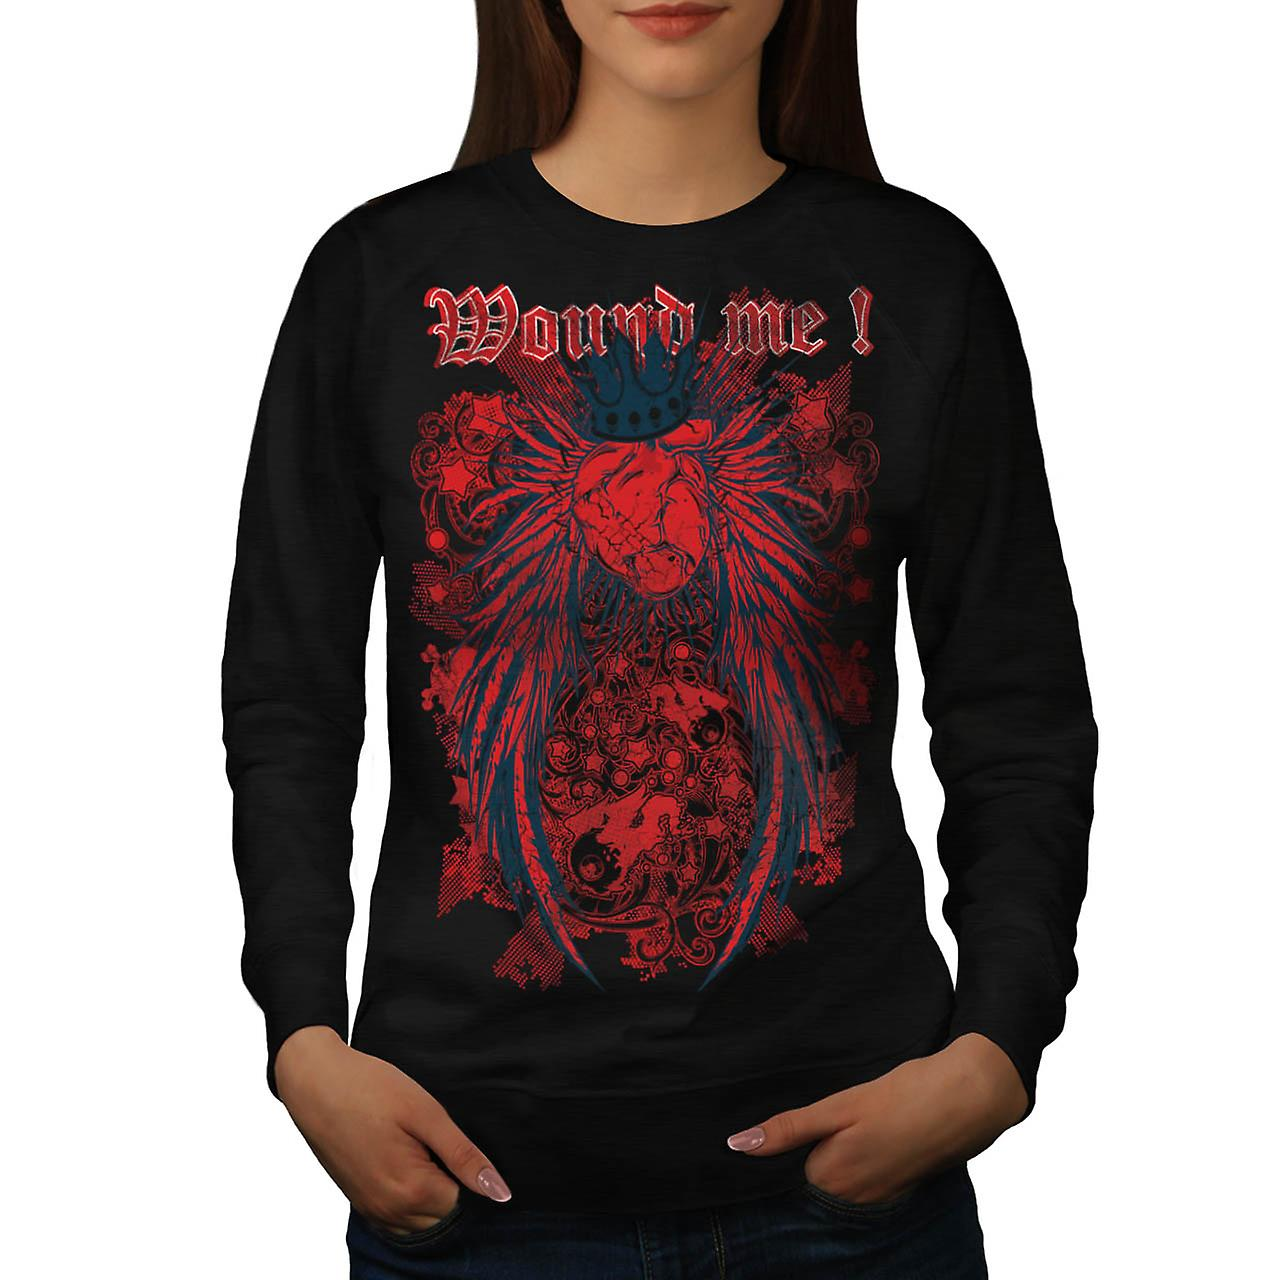 Wounded Heart Art Fashion Love Queen Women Black Sweatshirt | Wellcoda